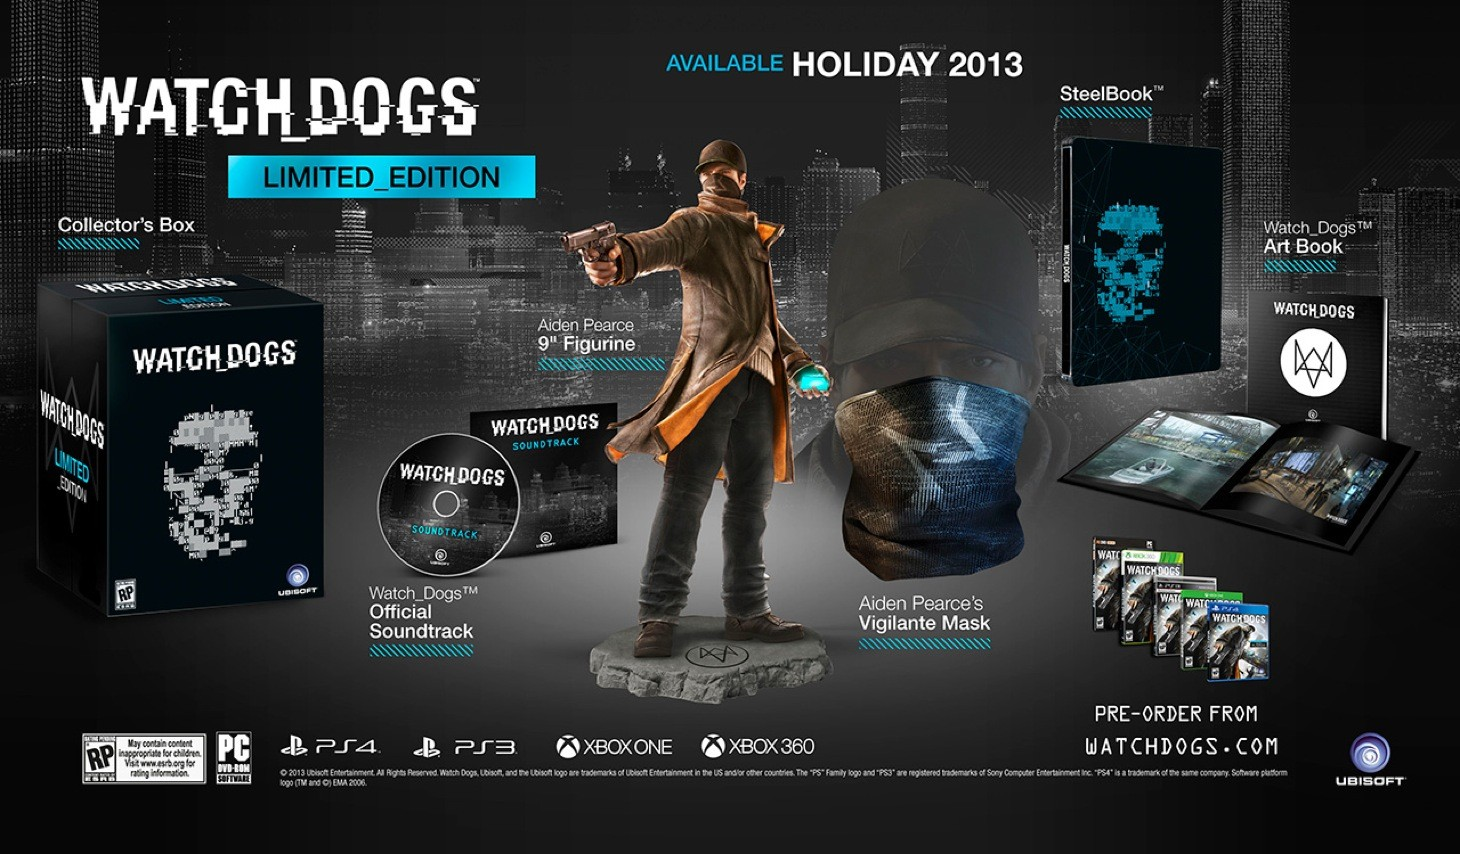 wpid-watch-dogs-limited-edition-na_1280.jpg